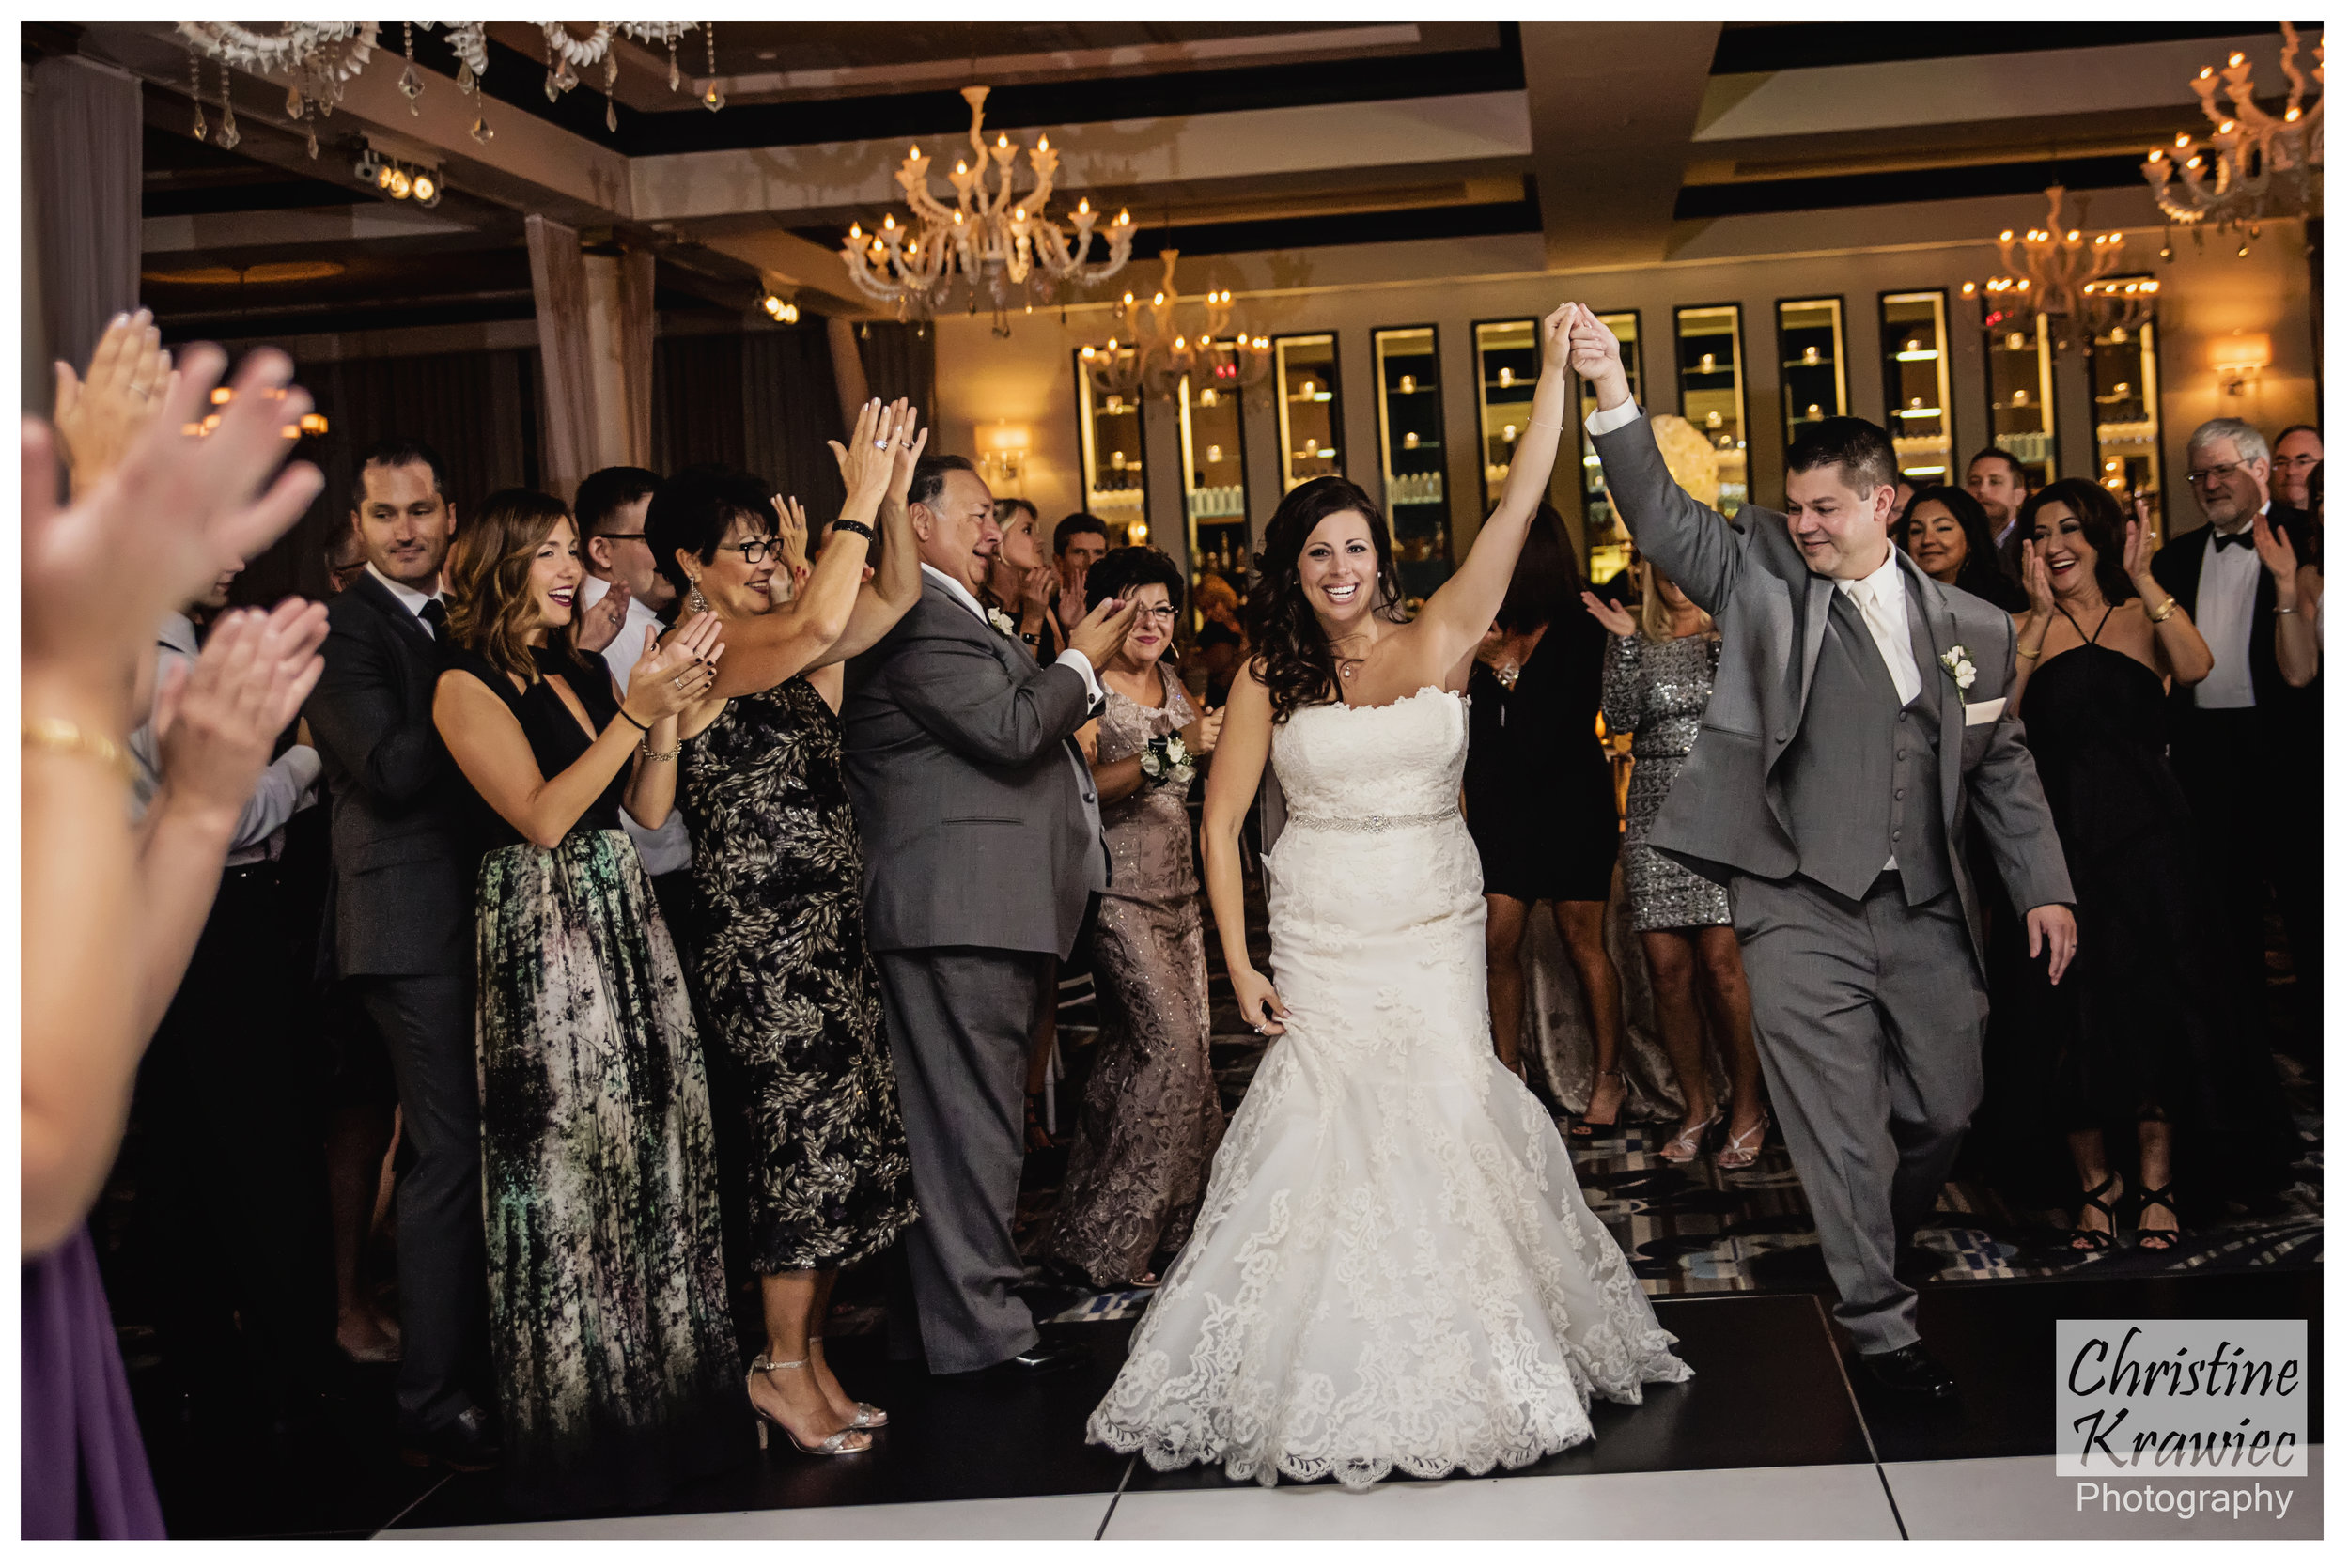 Lauren and Mike asked for everyone to be up and dancing before they came into the reception.  This was such a great idea as it got everyone on their feet and the energy UP for introductions